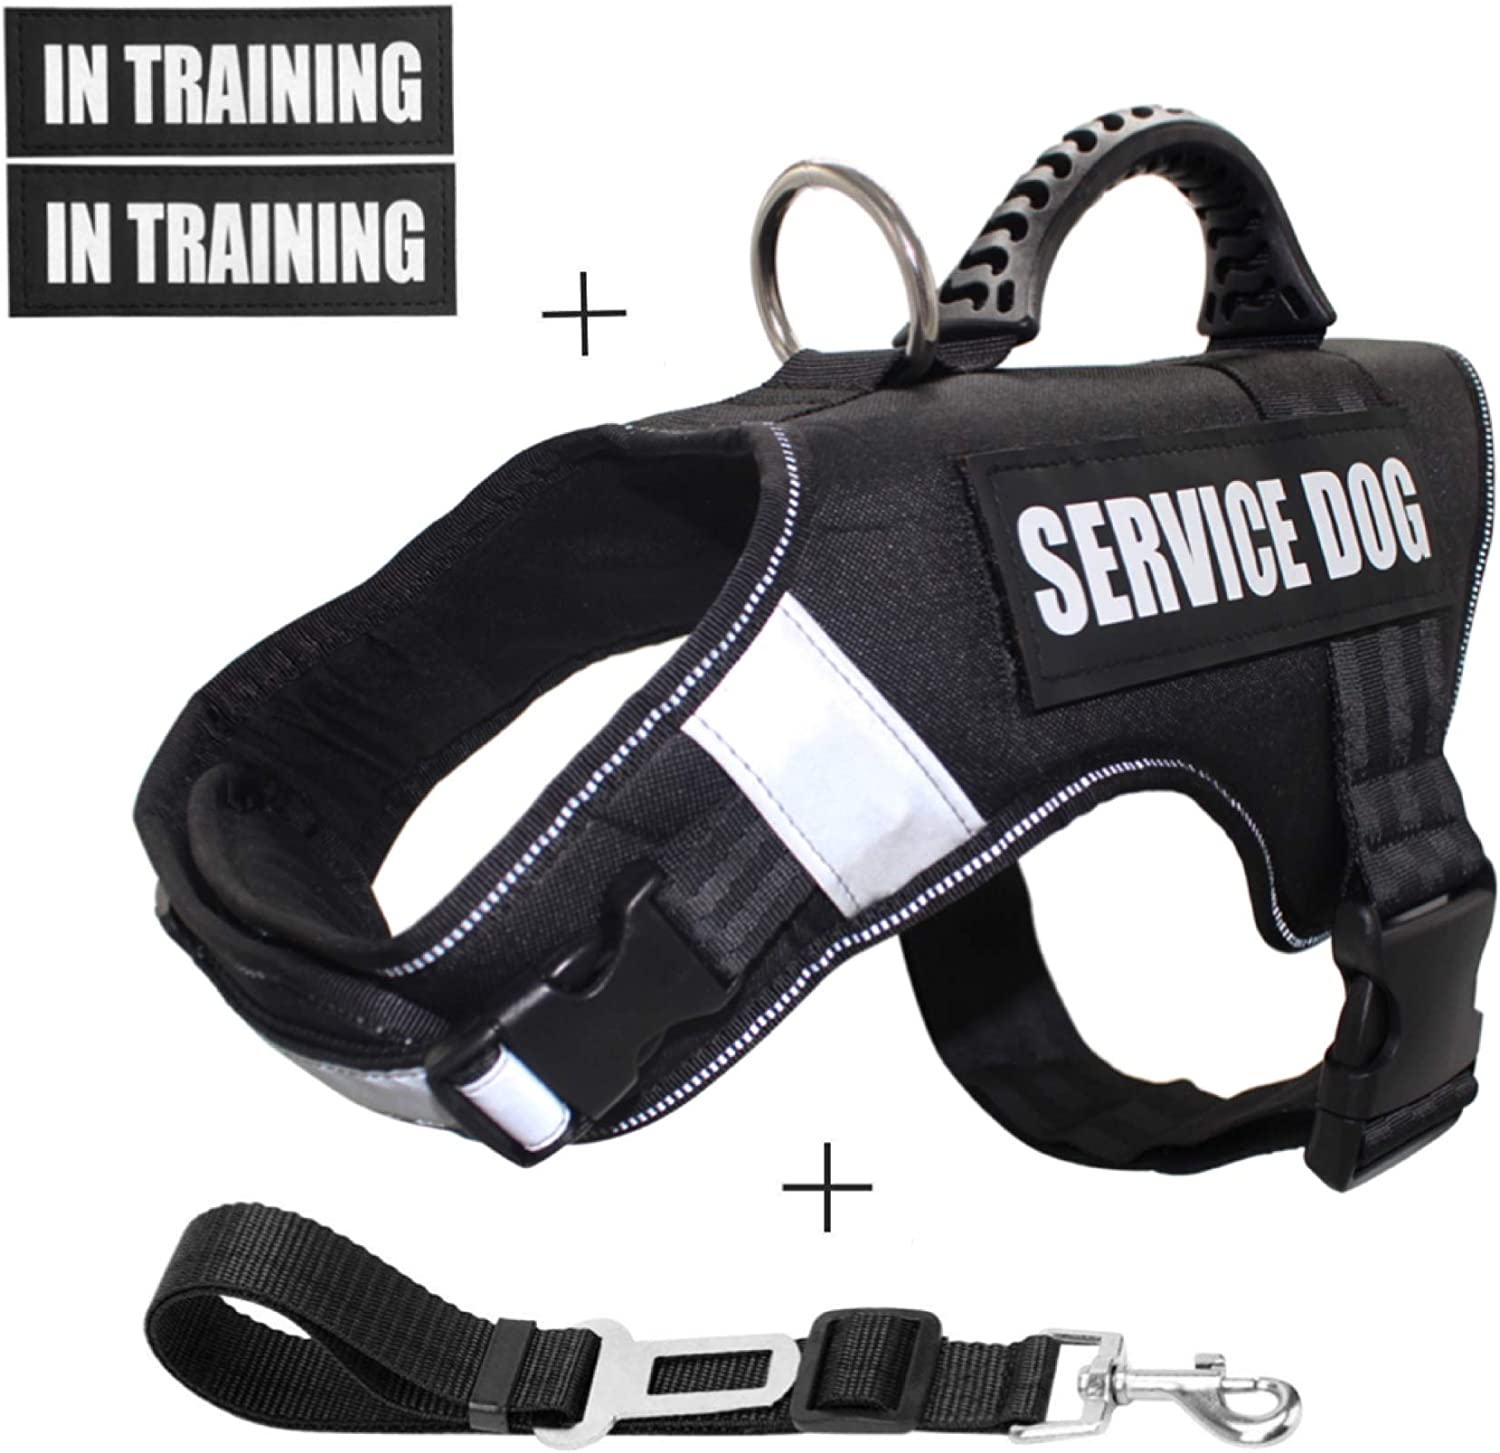 Praised Service Dog Vest Harness,Dog Training Vest Features Reflective Patch and Comfortable Mesh Design from,Adjustable Nylon Removable Reflective Patches 4PCS+Car Seat Belt Lead Clip(L Size, Black)